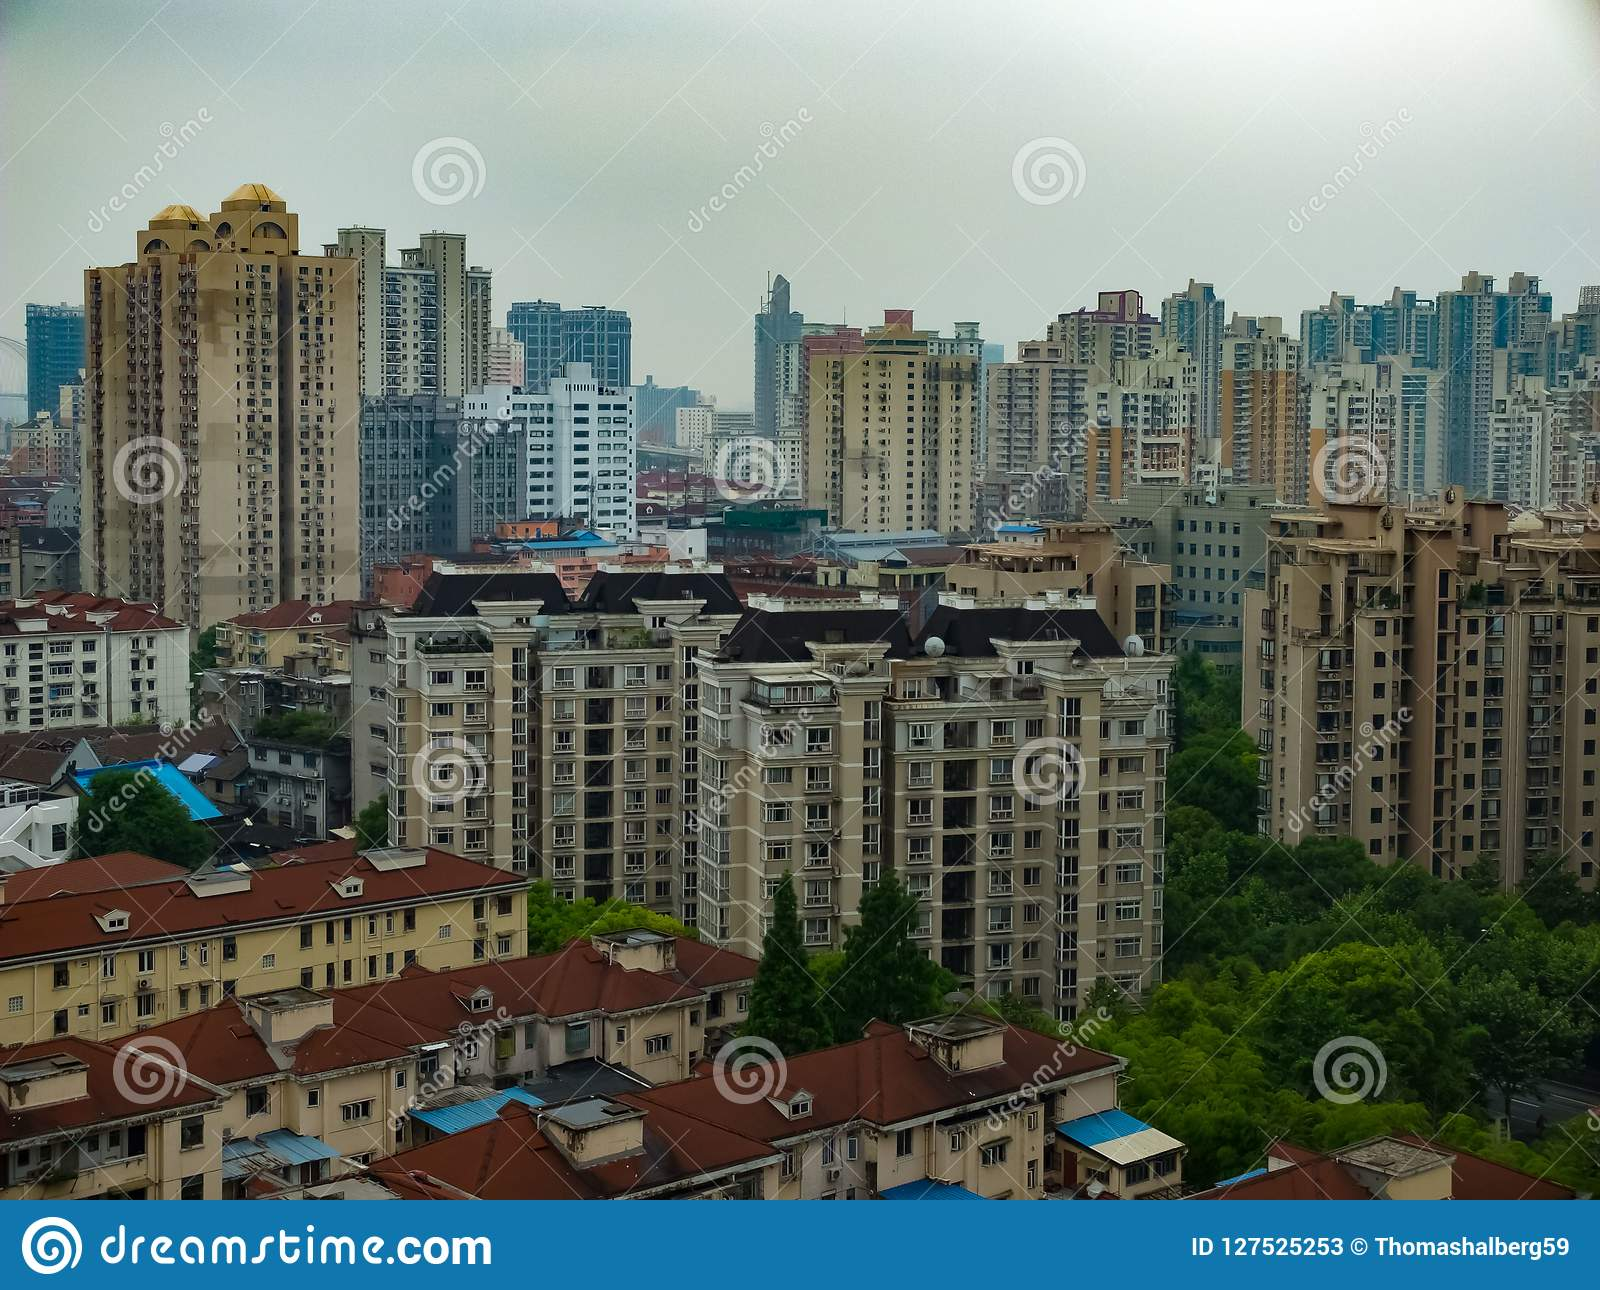 Residential district in Shanghai, China